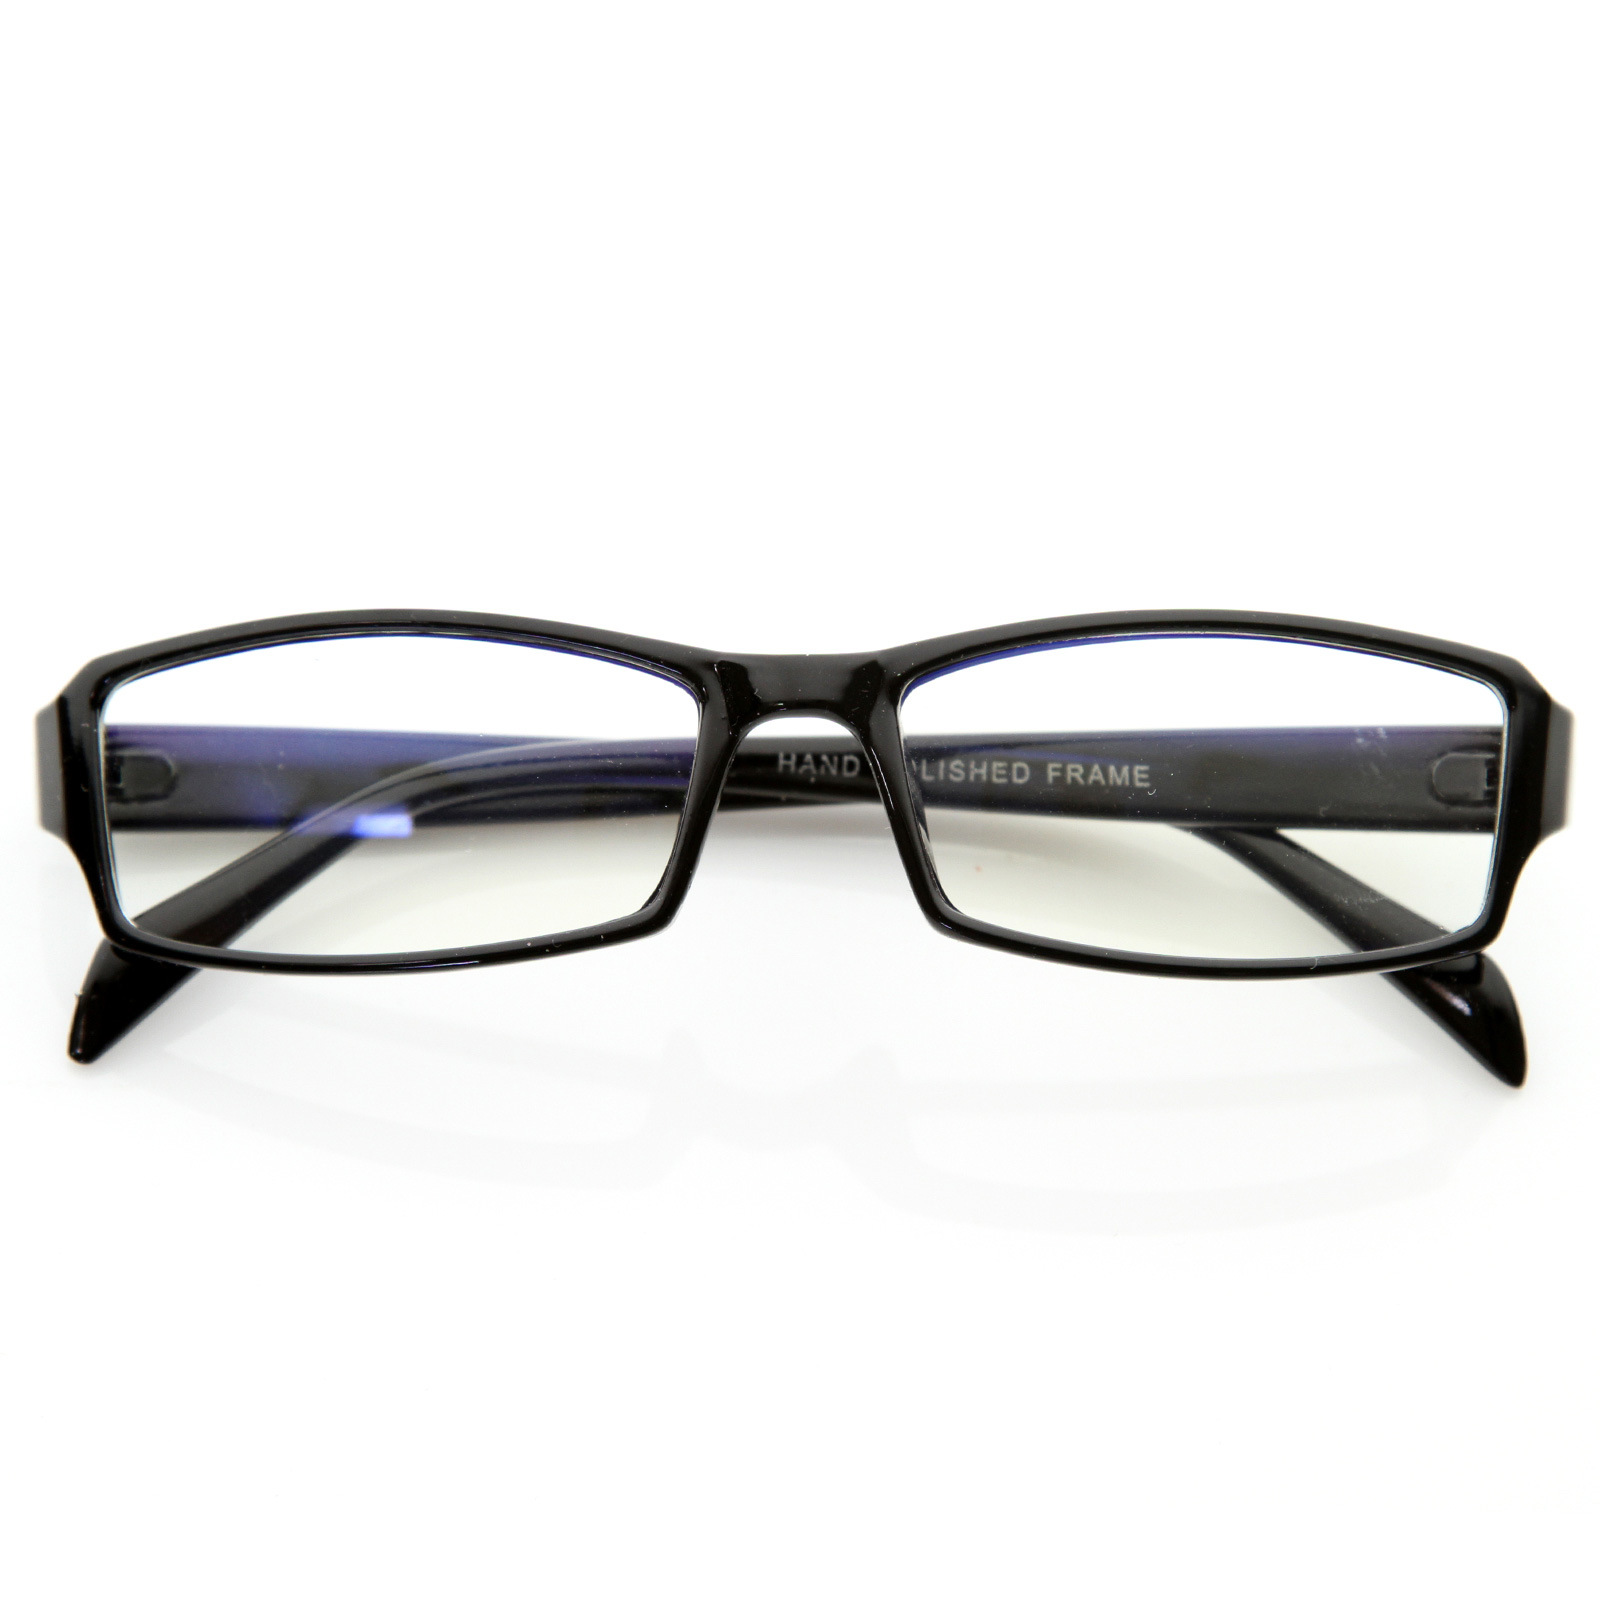 Glasses Frames Modern : Modern Rectangular Basic Frame Clear Lens Fashion Small ...